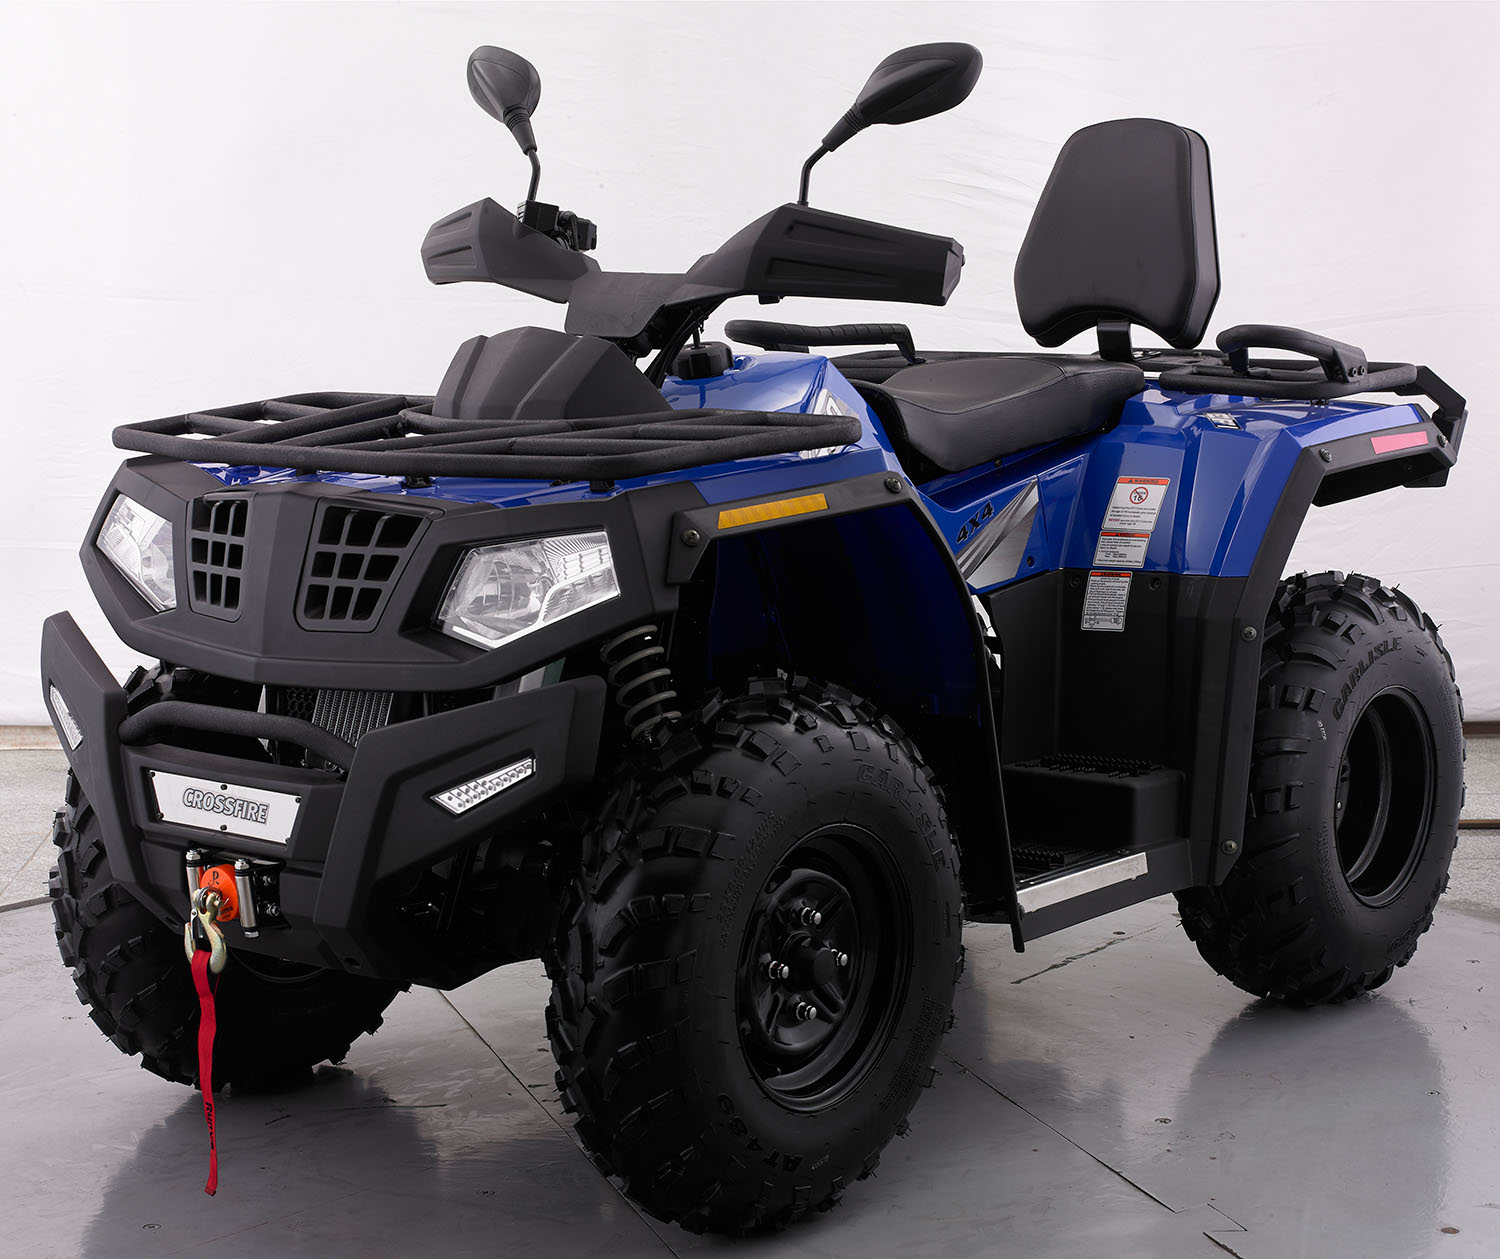 crossfire-x400-atv-blue-front-side-2